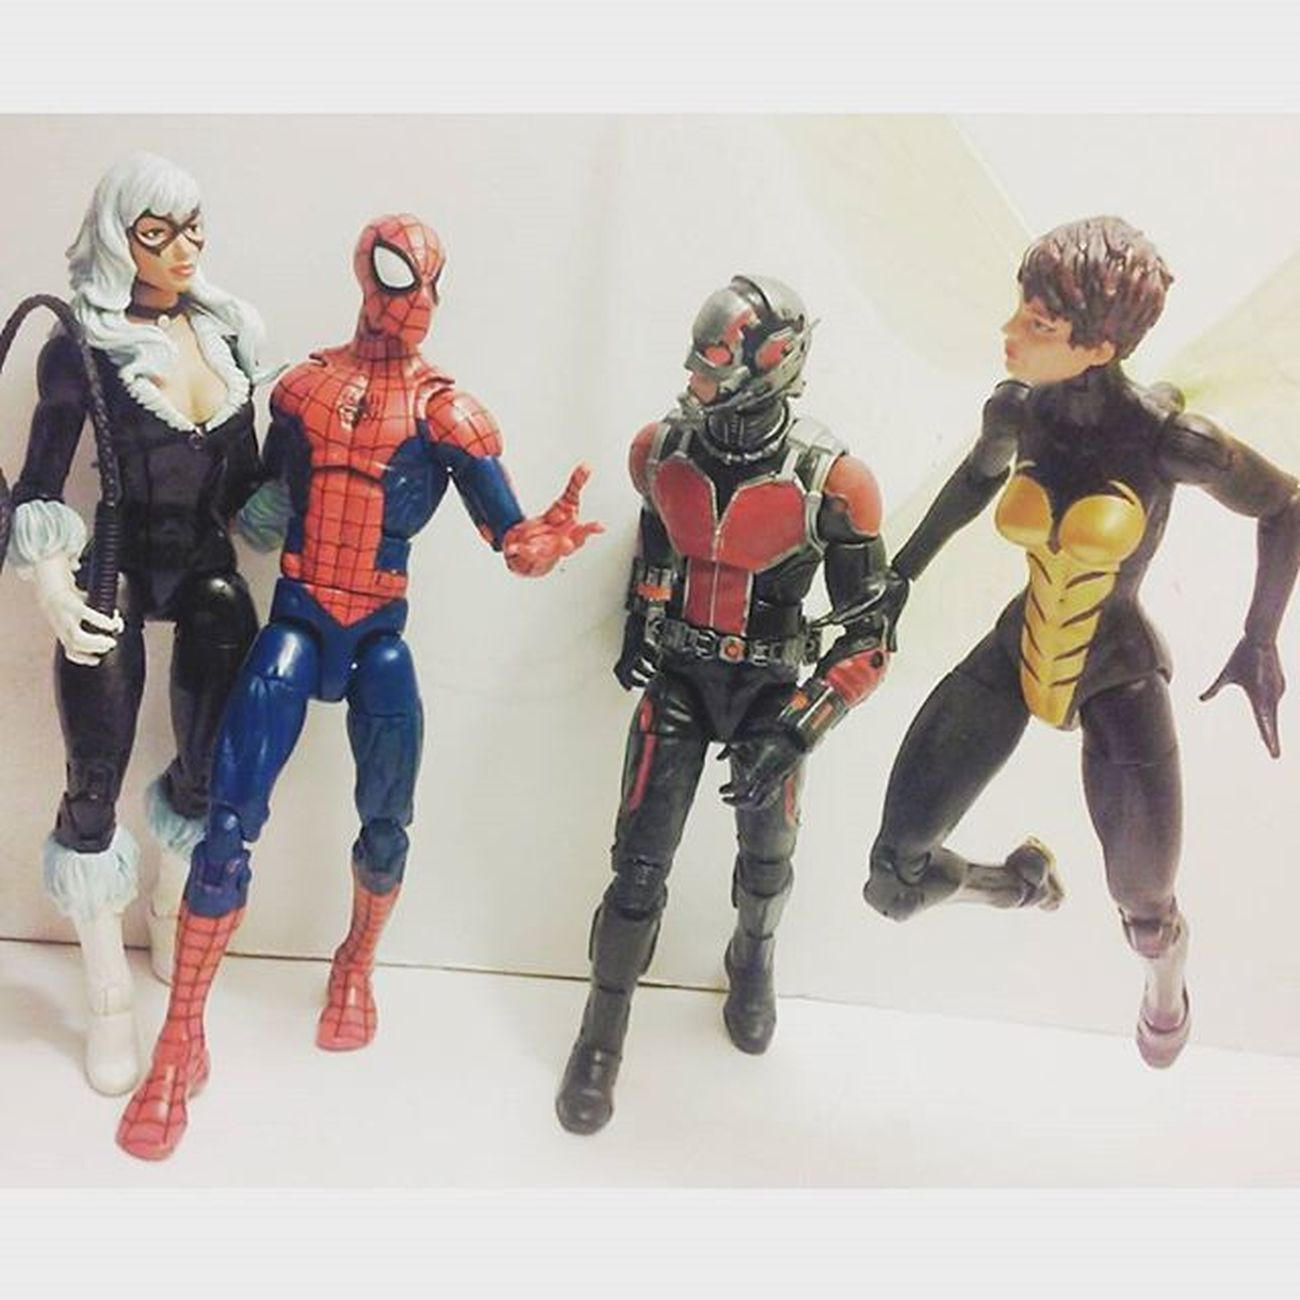 Spidey and antman double dating! 😄 Marvellegends Infiniteseries Wasp Antman Disney Hopevandyne BLackCat Feliciahardy Figurecollection Figures Collection Collector Articulatedcomicbook ACBA Actiontoyart Toyslagram Toysrmydrug Feliciahardy Scottlang Nerd Doubledate Comiccouples Relationships Nerd Hasbro Mcu geek amazingspiderman spidey tcb_peekaboo Spiderman toycommunity